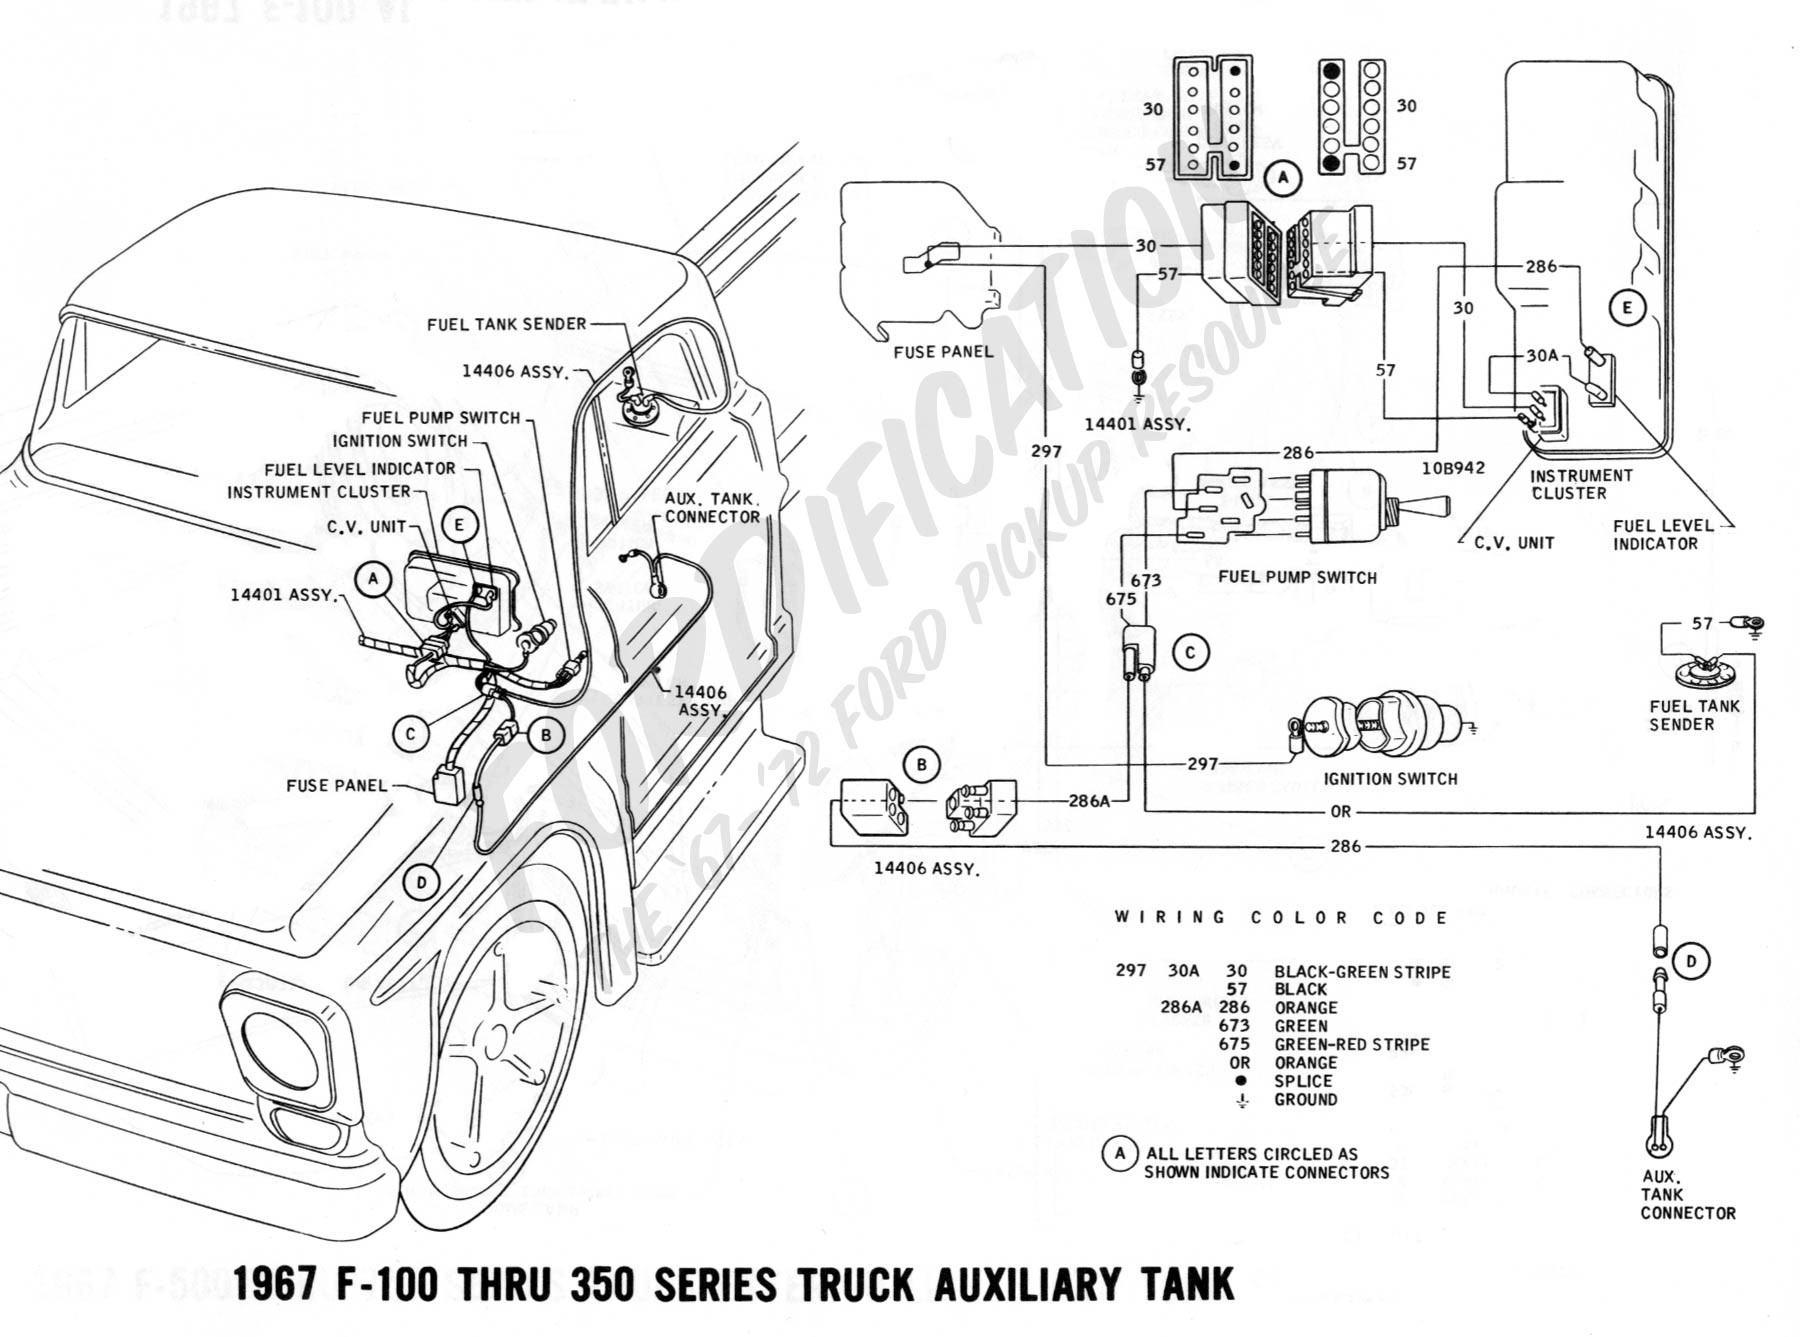 1967 Ford Starter Solenoid Wiring Diagram Library 1994 F 150 100 Thru 350 Auxiliary Fuel Tank Truck Technical Drawings And Schematics F150 Awesome